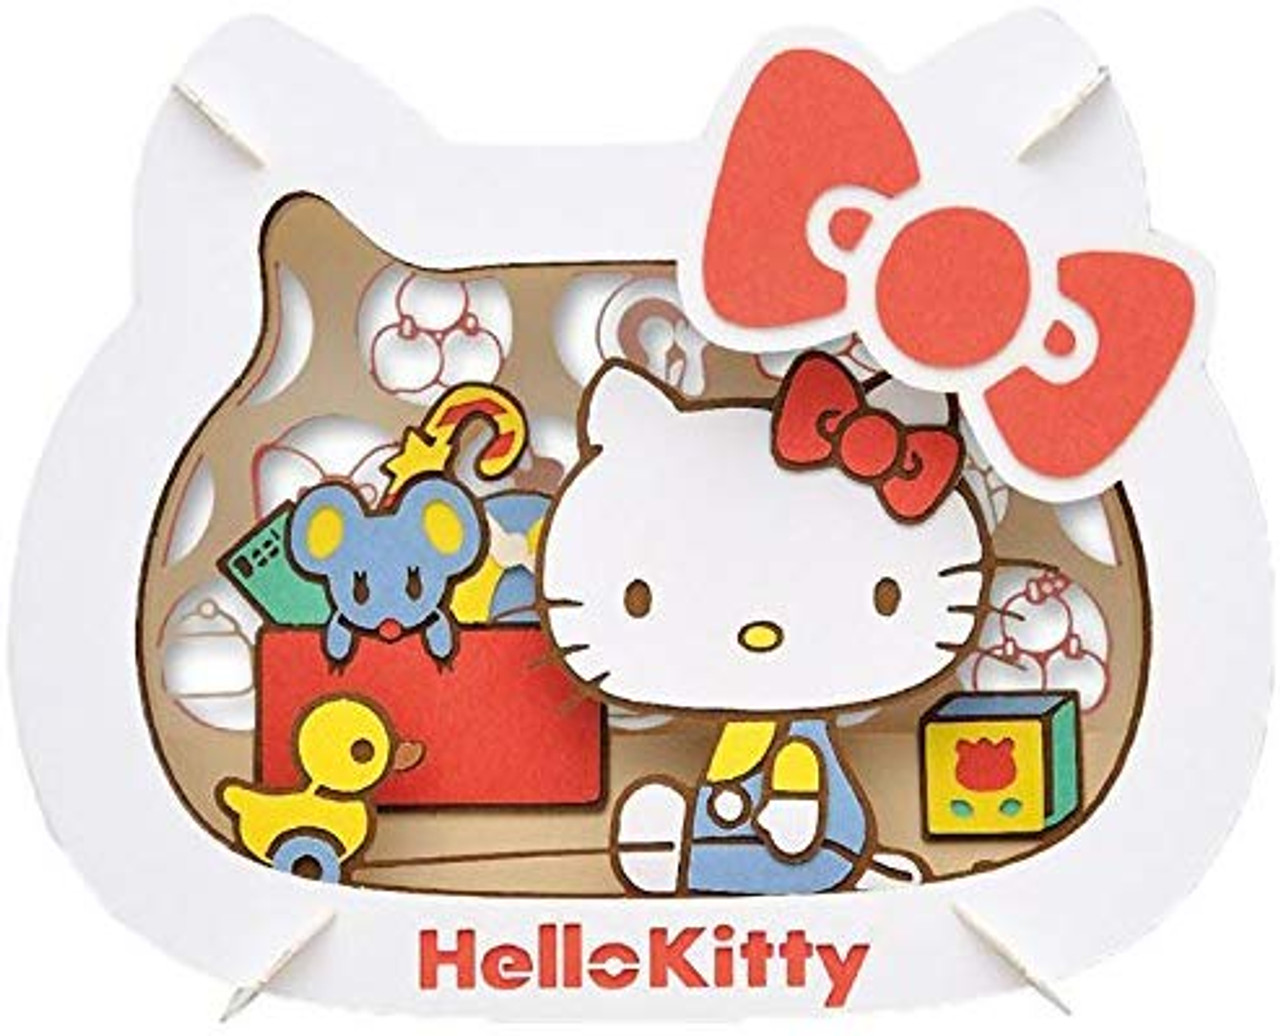 ENSKY Paper Theater Sanrio Little Twin Stars Paper Craft Kit from Japan*